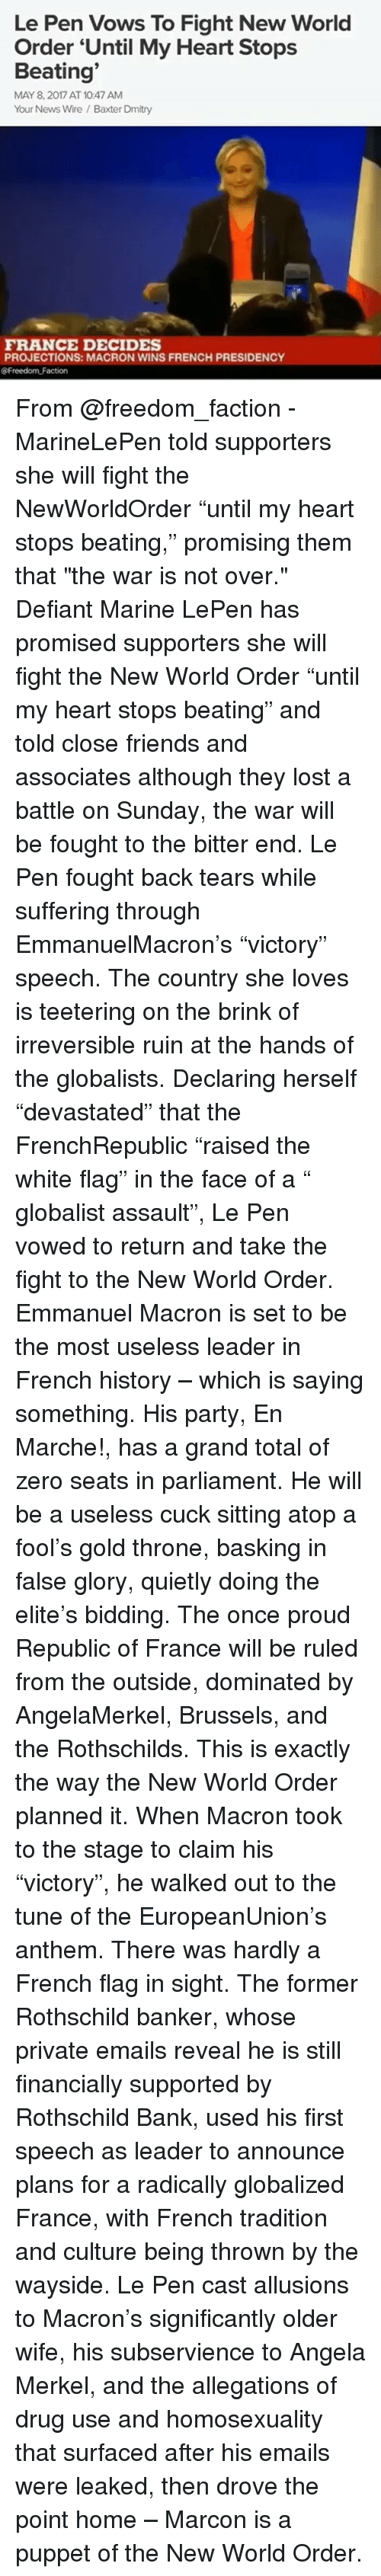 """rothschild bank: Le Pen Vows To Fight New World  Order Until My Heart Stops  Beating  MAY 8, 2017 AT 10:47 AM  Your News Wire Baxter Dmitry  FRANCE DECIDES  PROJECTIONS: MACRON WINS FRENCH PRESIDENCY  @Freedom Faction From @freedom_faction - MarineLePen told supporters she will fight the NewWorldOrder """"until my heart stops beating,"""" promising them that """"the war is not over."""" Defiant Marine LePen has promised supporters she will fight the New World Order """"until my heart stops beating"""" and told close friends and associates although they lost a battle on Sunday, the war will be fought to the bitter end. Le Pen fought back tears while suffering through EmmanuelMacron's """"victory"""" speech. The country she loves is teetering on the brink of irreversible ruin at the hands of the globalists. Declaring herself """"devastated"""" that the FrenchRepublic """"raised the white flag"""" in the face of a """" globalist assault"""", Le Pen vowed to return and take the fight to the New World Order. Emmanuel Macron is set to be the most useless leader in French history – which is saying something. His party, En Marche!, has a grand total of zero seats in parliament. He will be a useless cuck sitting atop a fool's gold throne, basking in false glory, quietly doing the elite's bidding. The once proud Republic of France will be ruled from the outside, dominated by AngelaMerkel, Brussels, and the Rothschilds. This is exactly the way the New World Order planned it. When Macron took to the stage to claim his """"victory"""", he walked out to the tune of the EuropeanUnion's anthem. There was hardly a French flag in sight. The former Rothschild banker, whose private emails reveal he is still financially supported by Rothschild Bank, used his first speech as leader to announce plans for a radically globalized France, with French tradition and culture being thrown by the wayside. Le Pen cast allusions to Macron's significantly older wife, his subservience to Angela Merkel, and the allegations of drug use and homosexual"""